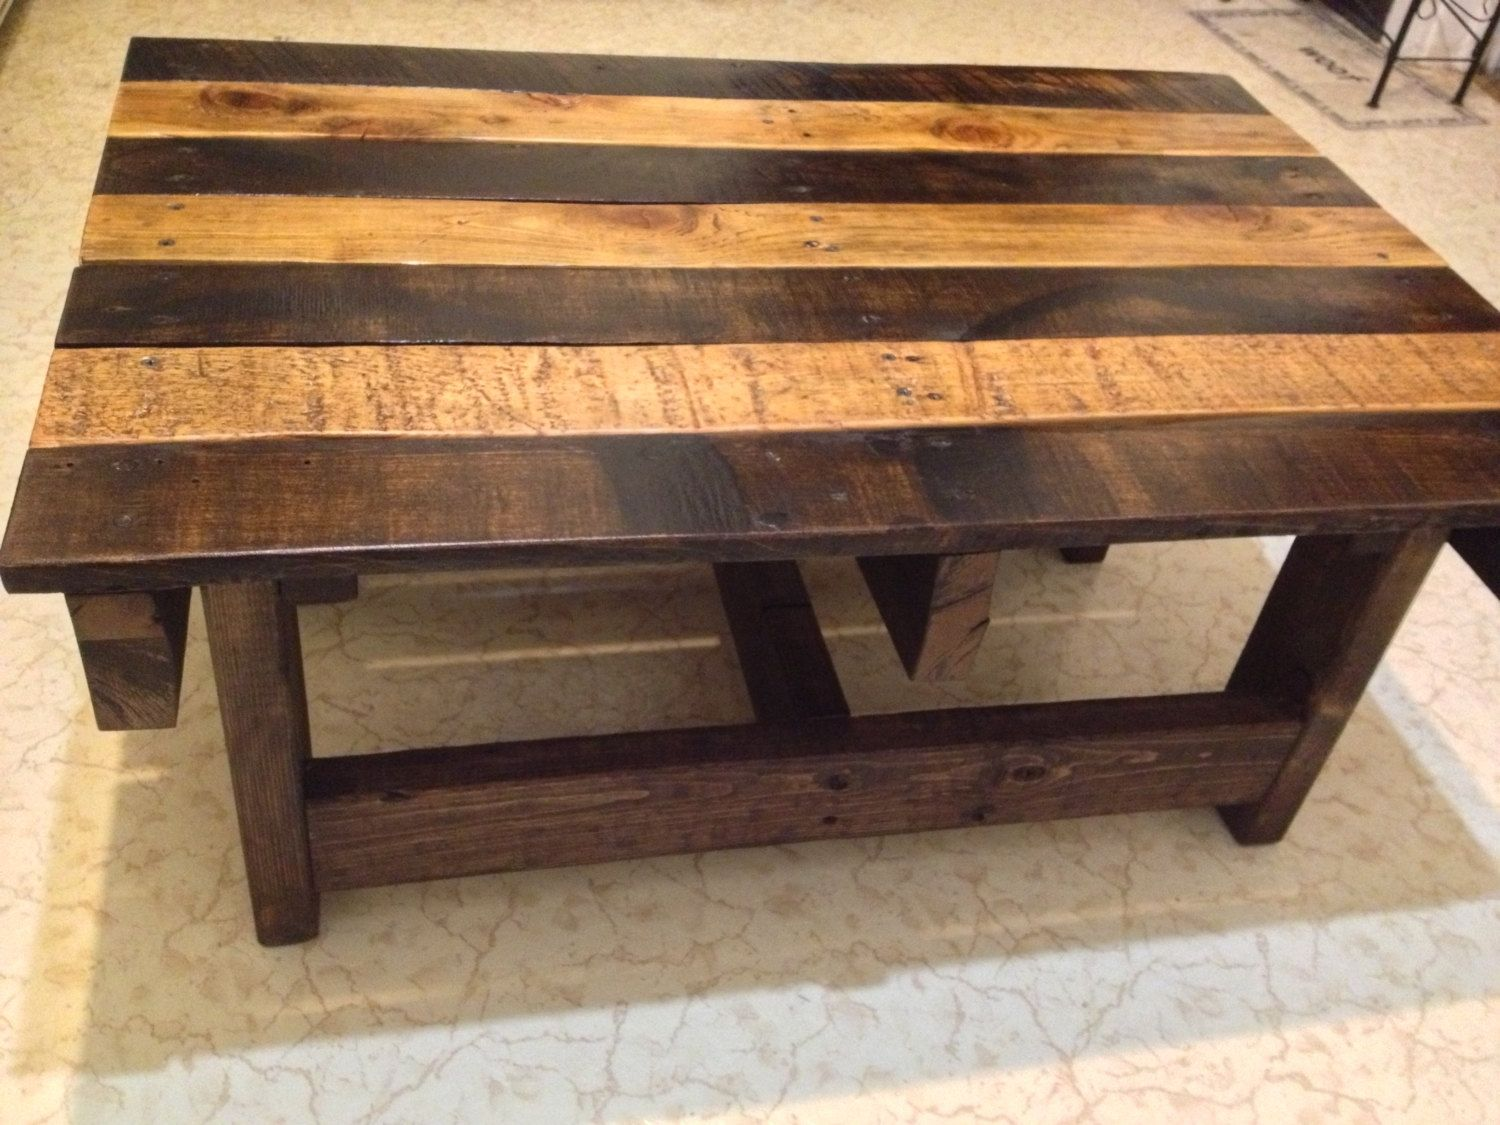 Hand crafted handmade reclaimed rustic pallet wood coffee table by kevin davis woodwork Coffee tables rustic